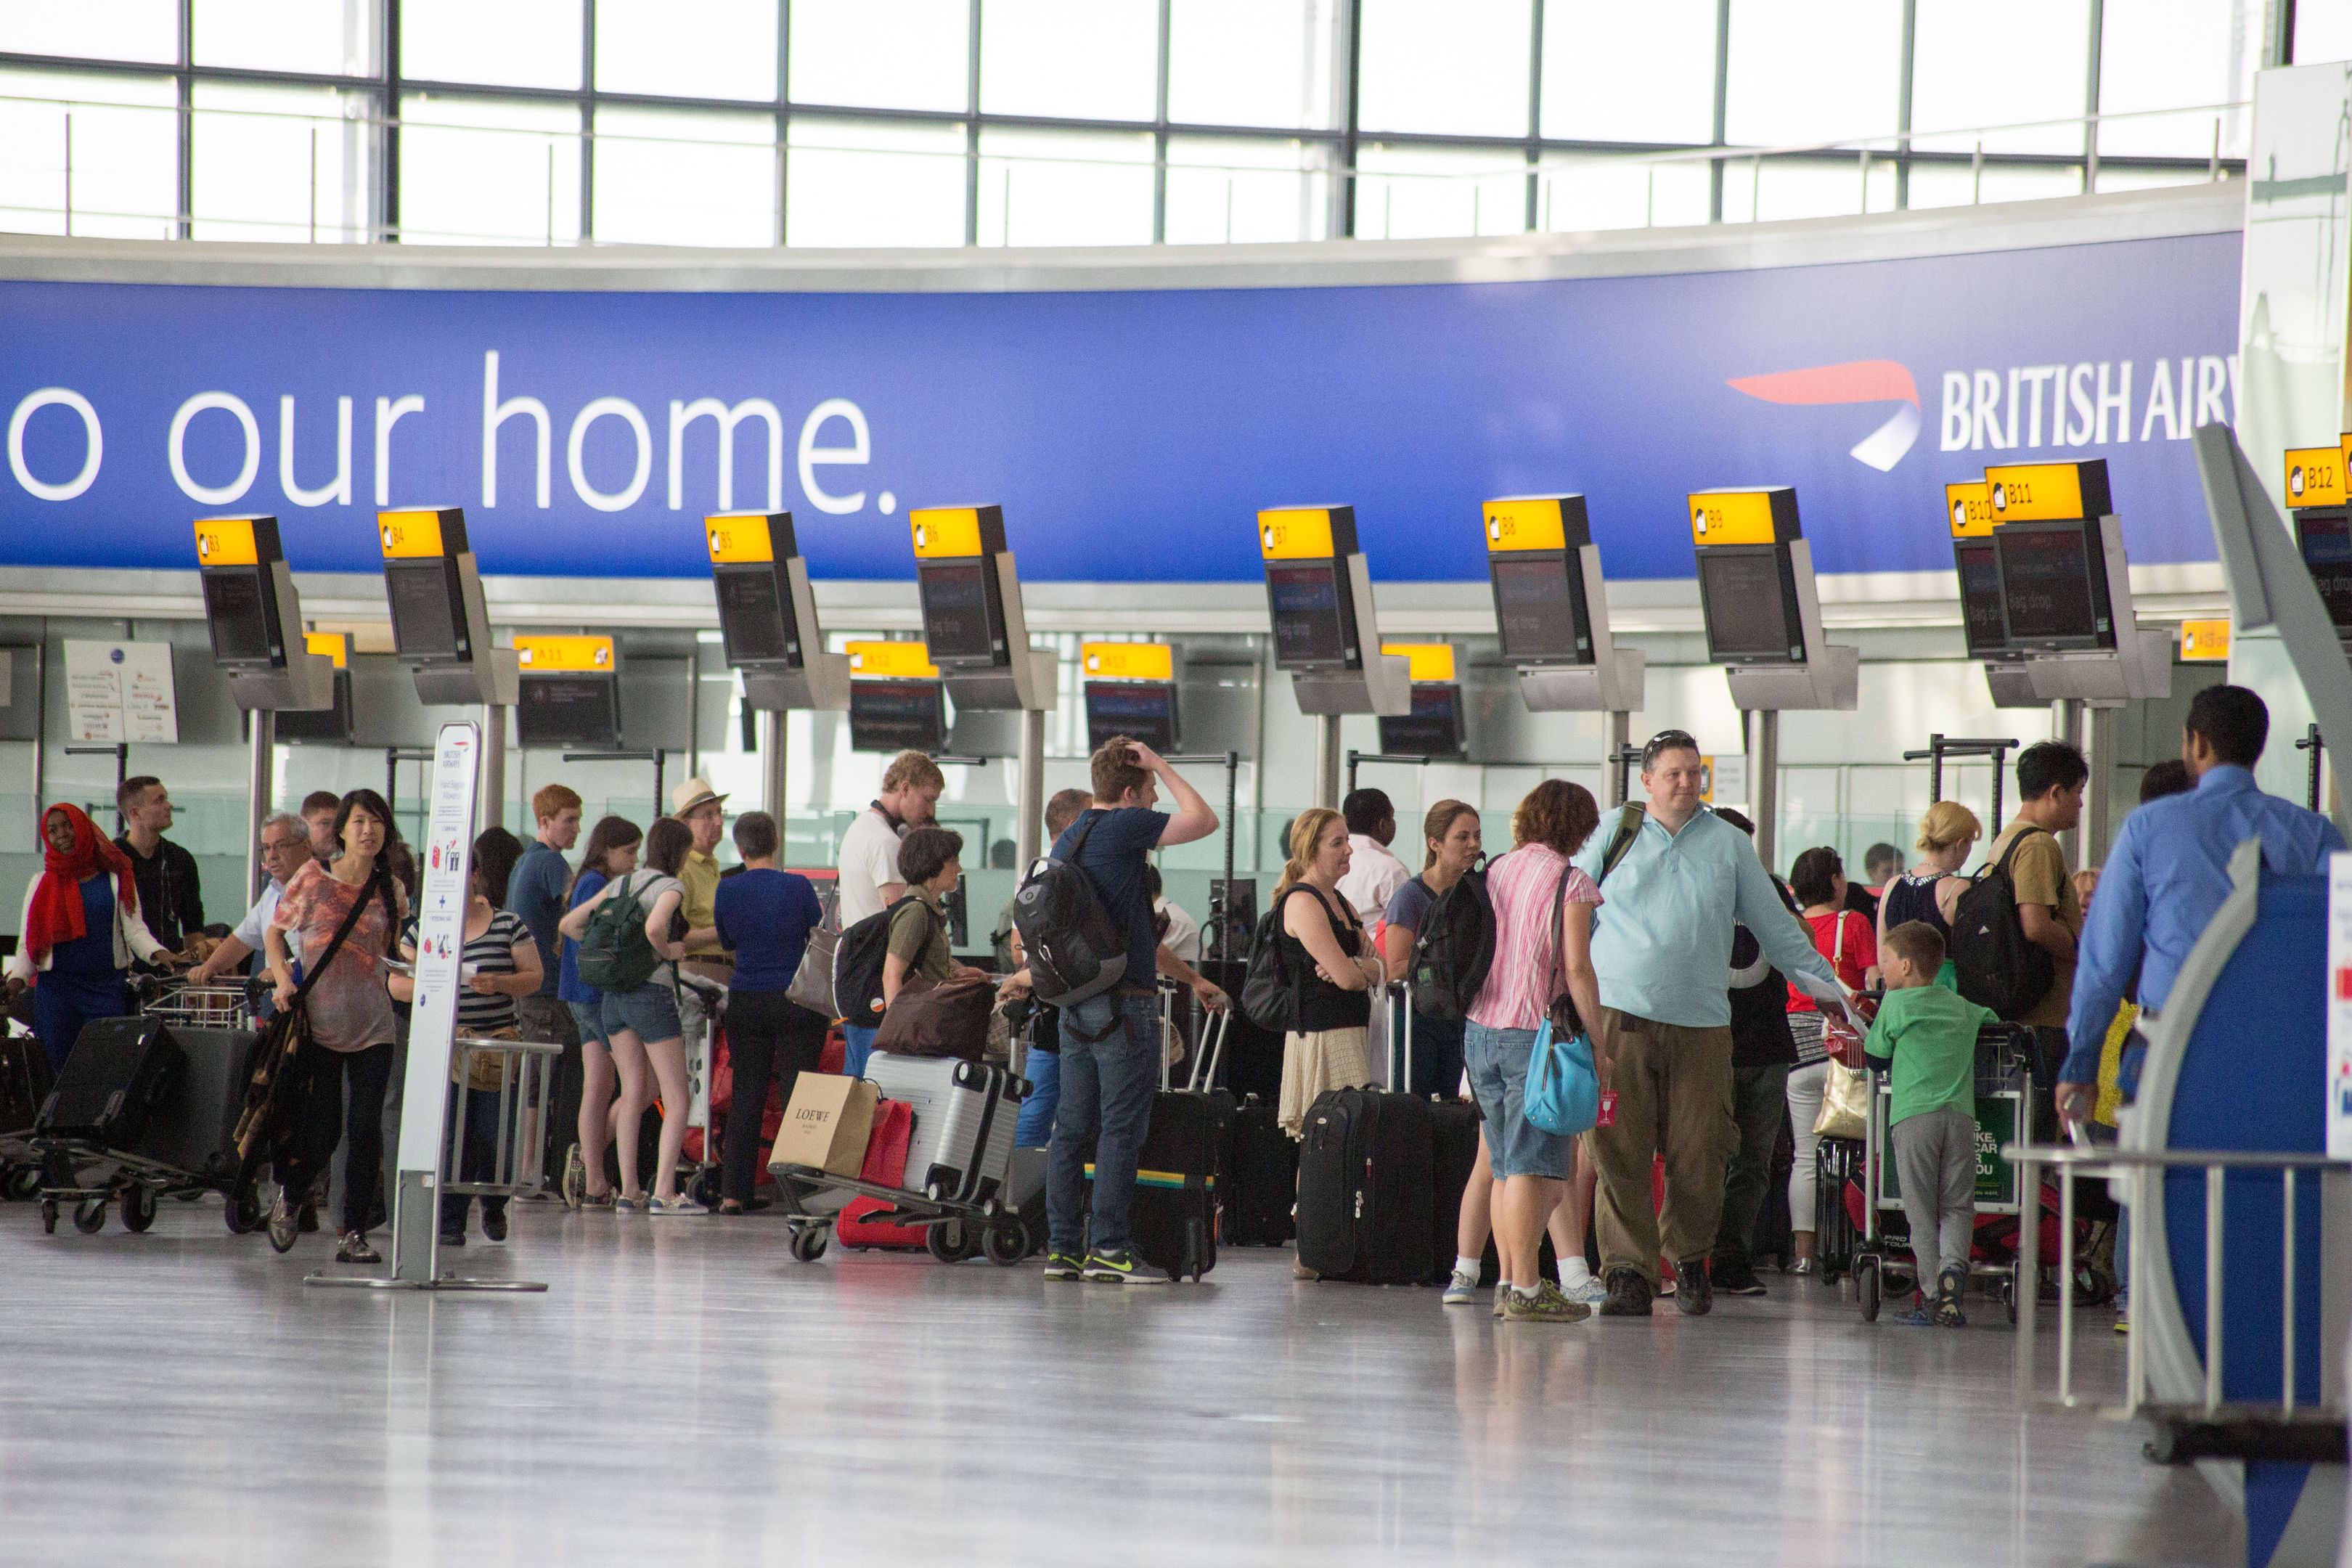 Many UK holidaymakers will pay less for food and drink when they go abroad this year, according to new research (Steve Parsons/PA Wire)